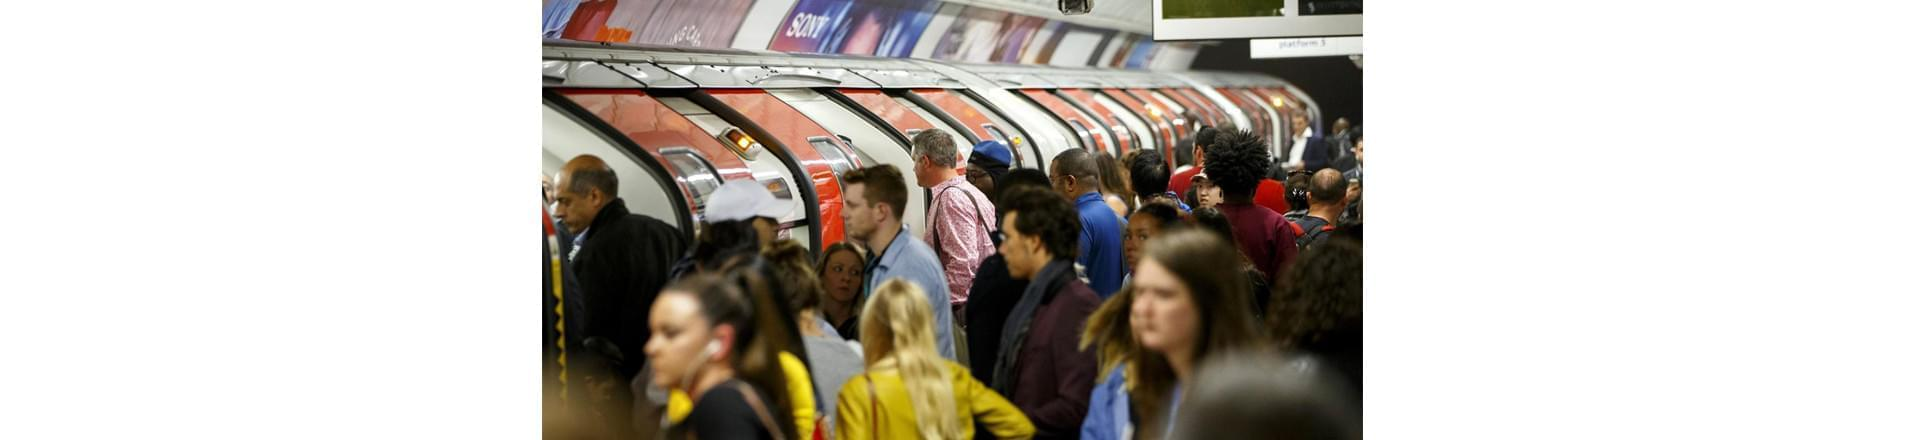 a busy London tube platform full of a diverse mix of commuters.